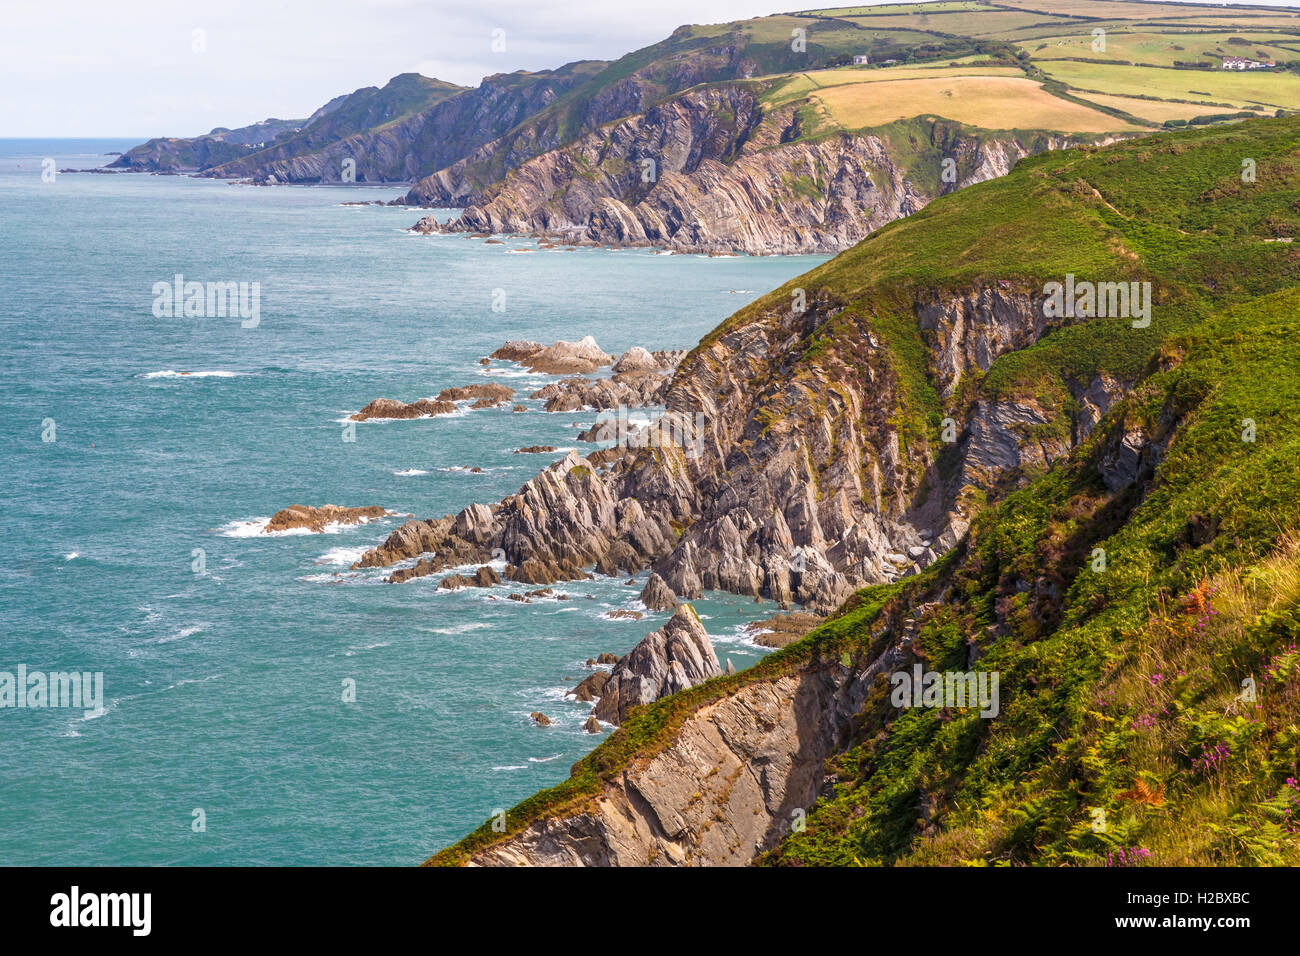 View from Bull Point, looking towards Lee bay. Stock Photo